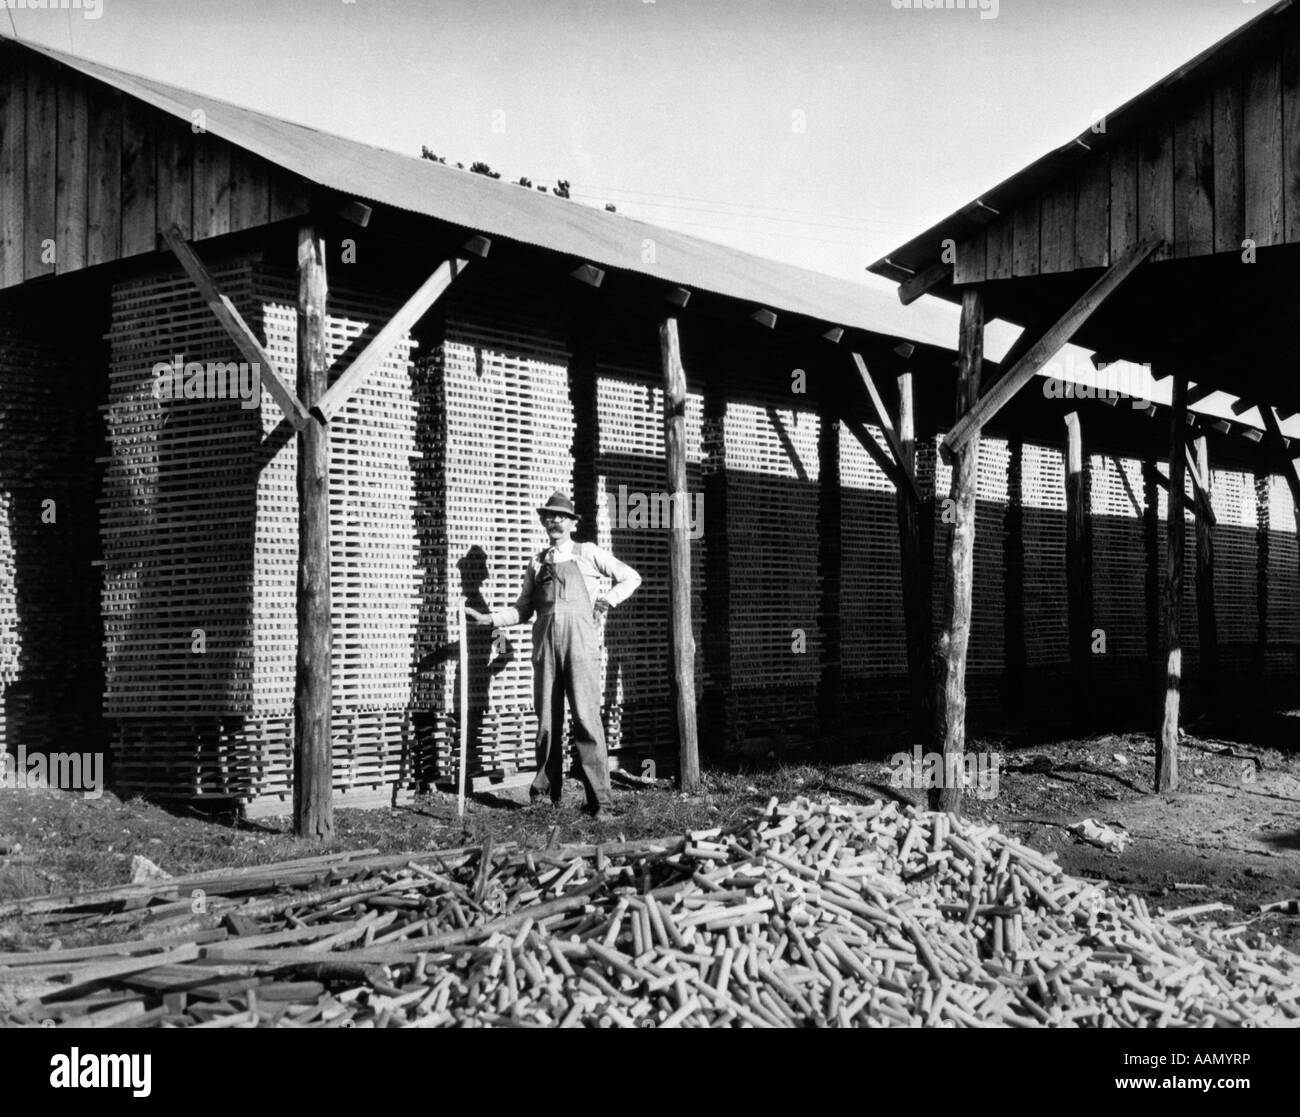 1930s WORKER PILES HICKORY STICKS AT GOLF CLUB AND CHAIR RUNG FACTORY IN ARKANSAS - Stock Image